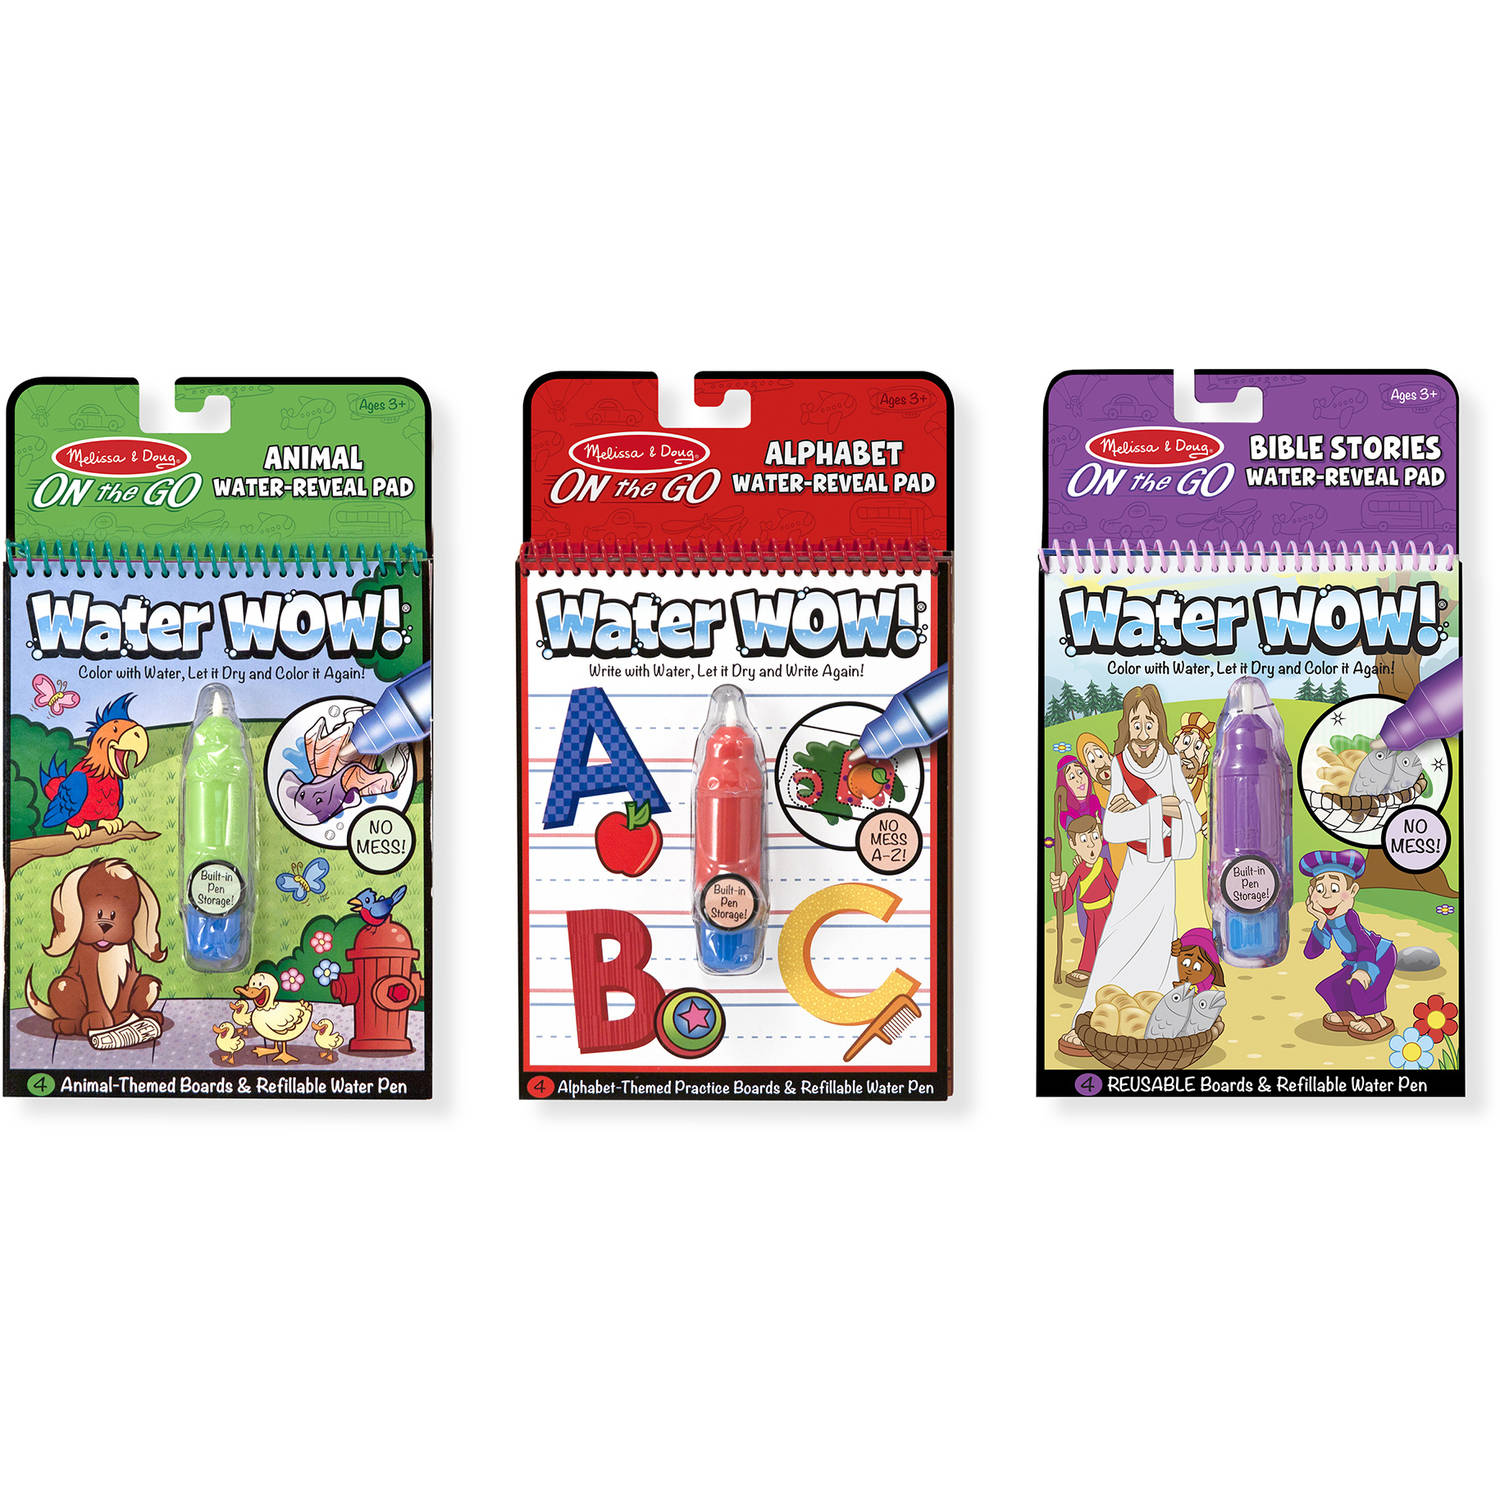 Melissa and Doug On the Go Water Wow! Activity Pads Set, Animals, Alphabet and Bible Pads